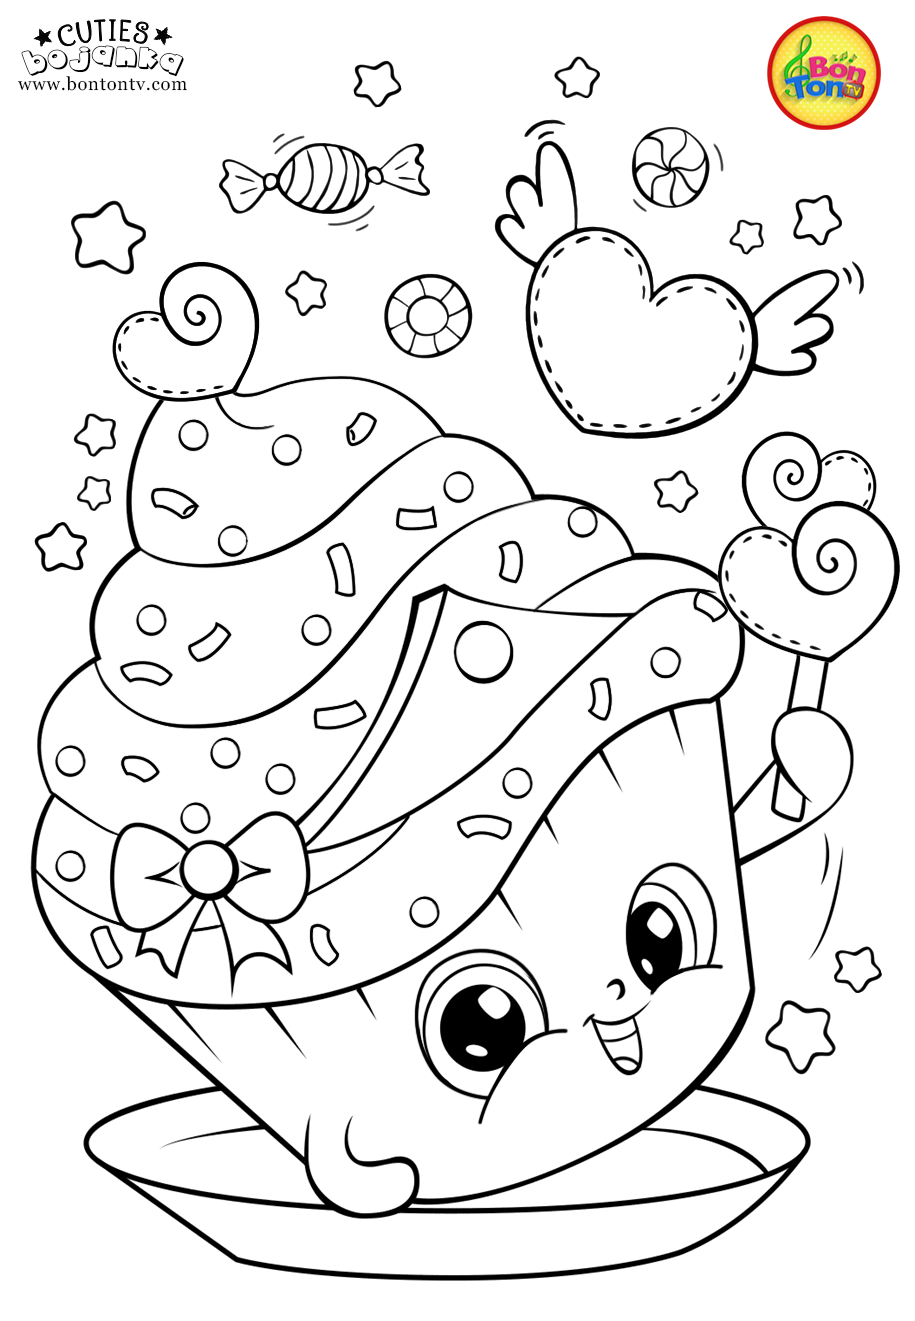 Newest Free Kids Coloring Pages Thoughts The Gorgeous Issue About Colouring Is It Is Us In 2021 Free Kids Coloring Pages Spring Coloring Pages Preschool Coloring Pages